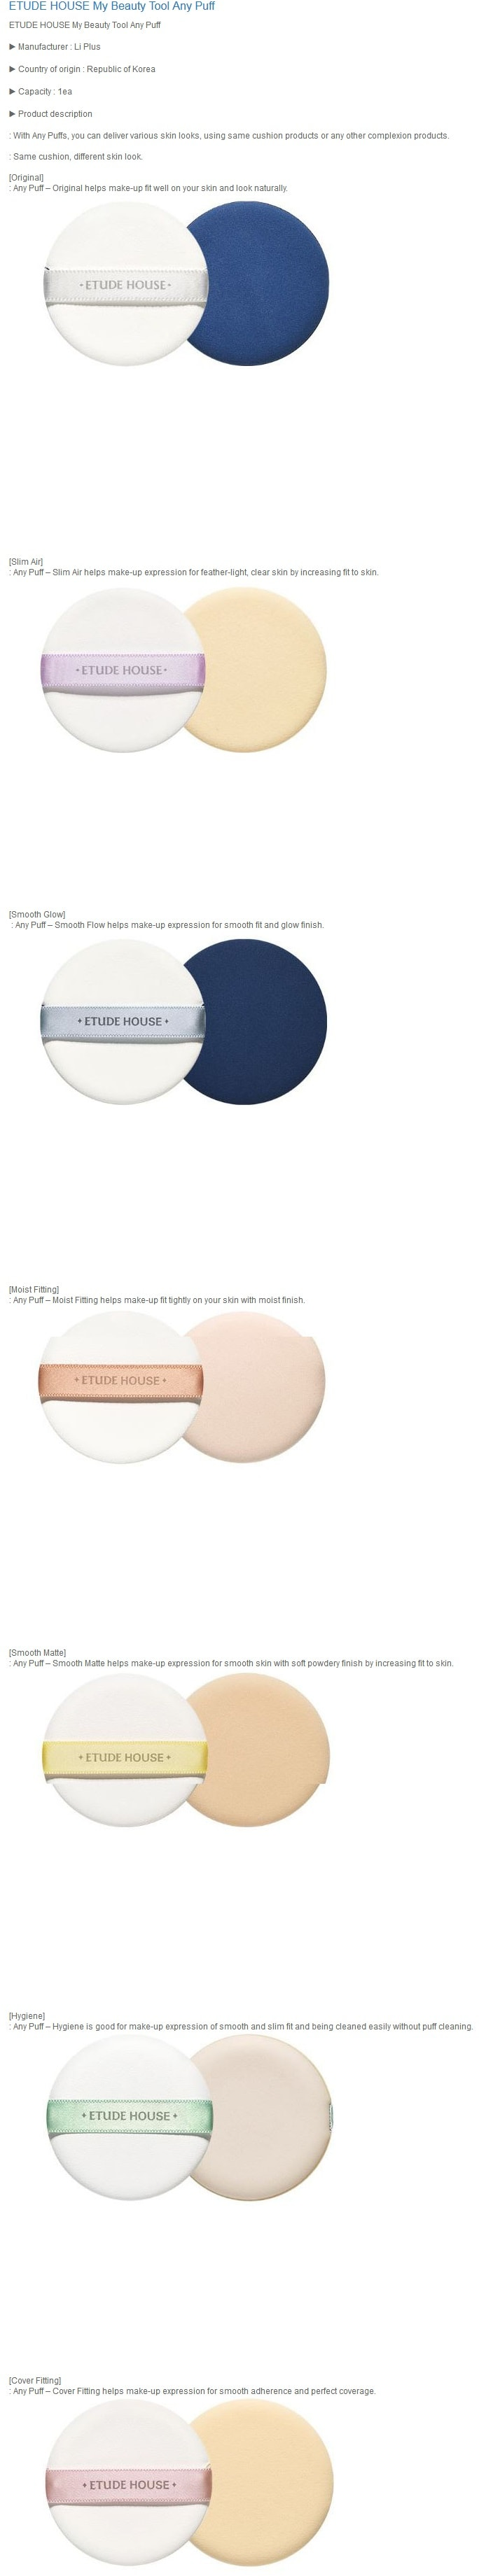 ETUDE HOUSE My beauty Tool Any Puff (Cover Fitting) 1 piece